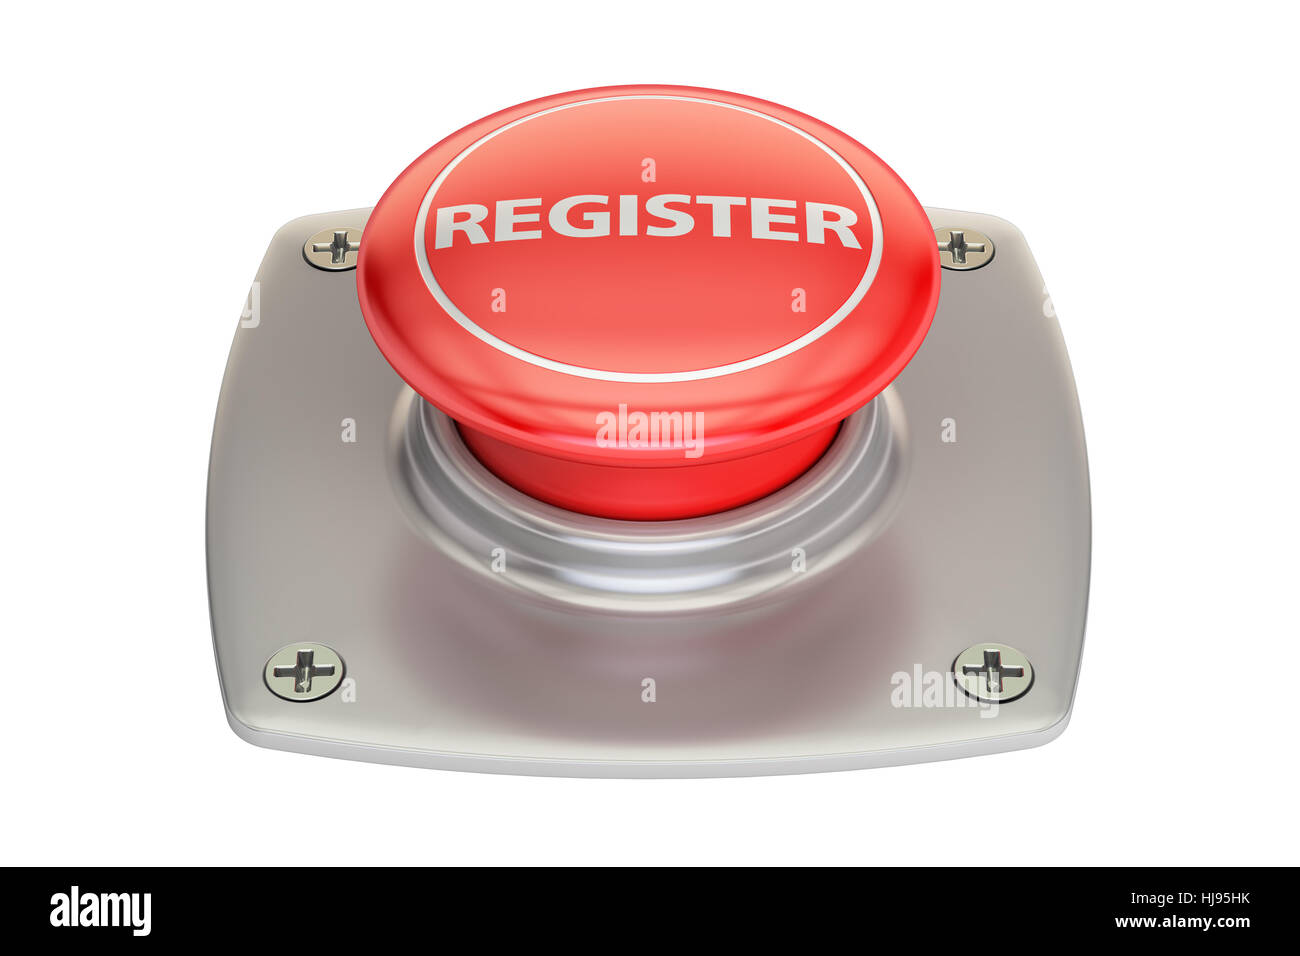 Register Red button, 3D rendering isolated on white background - Stock Image